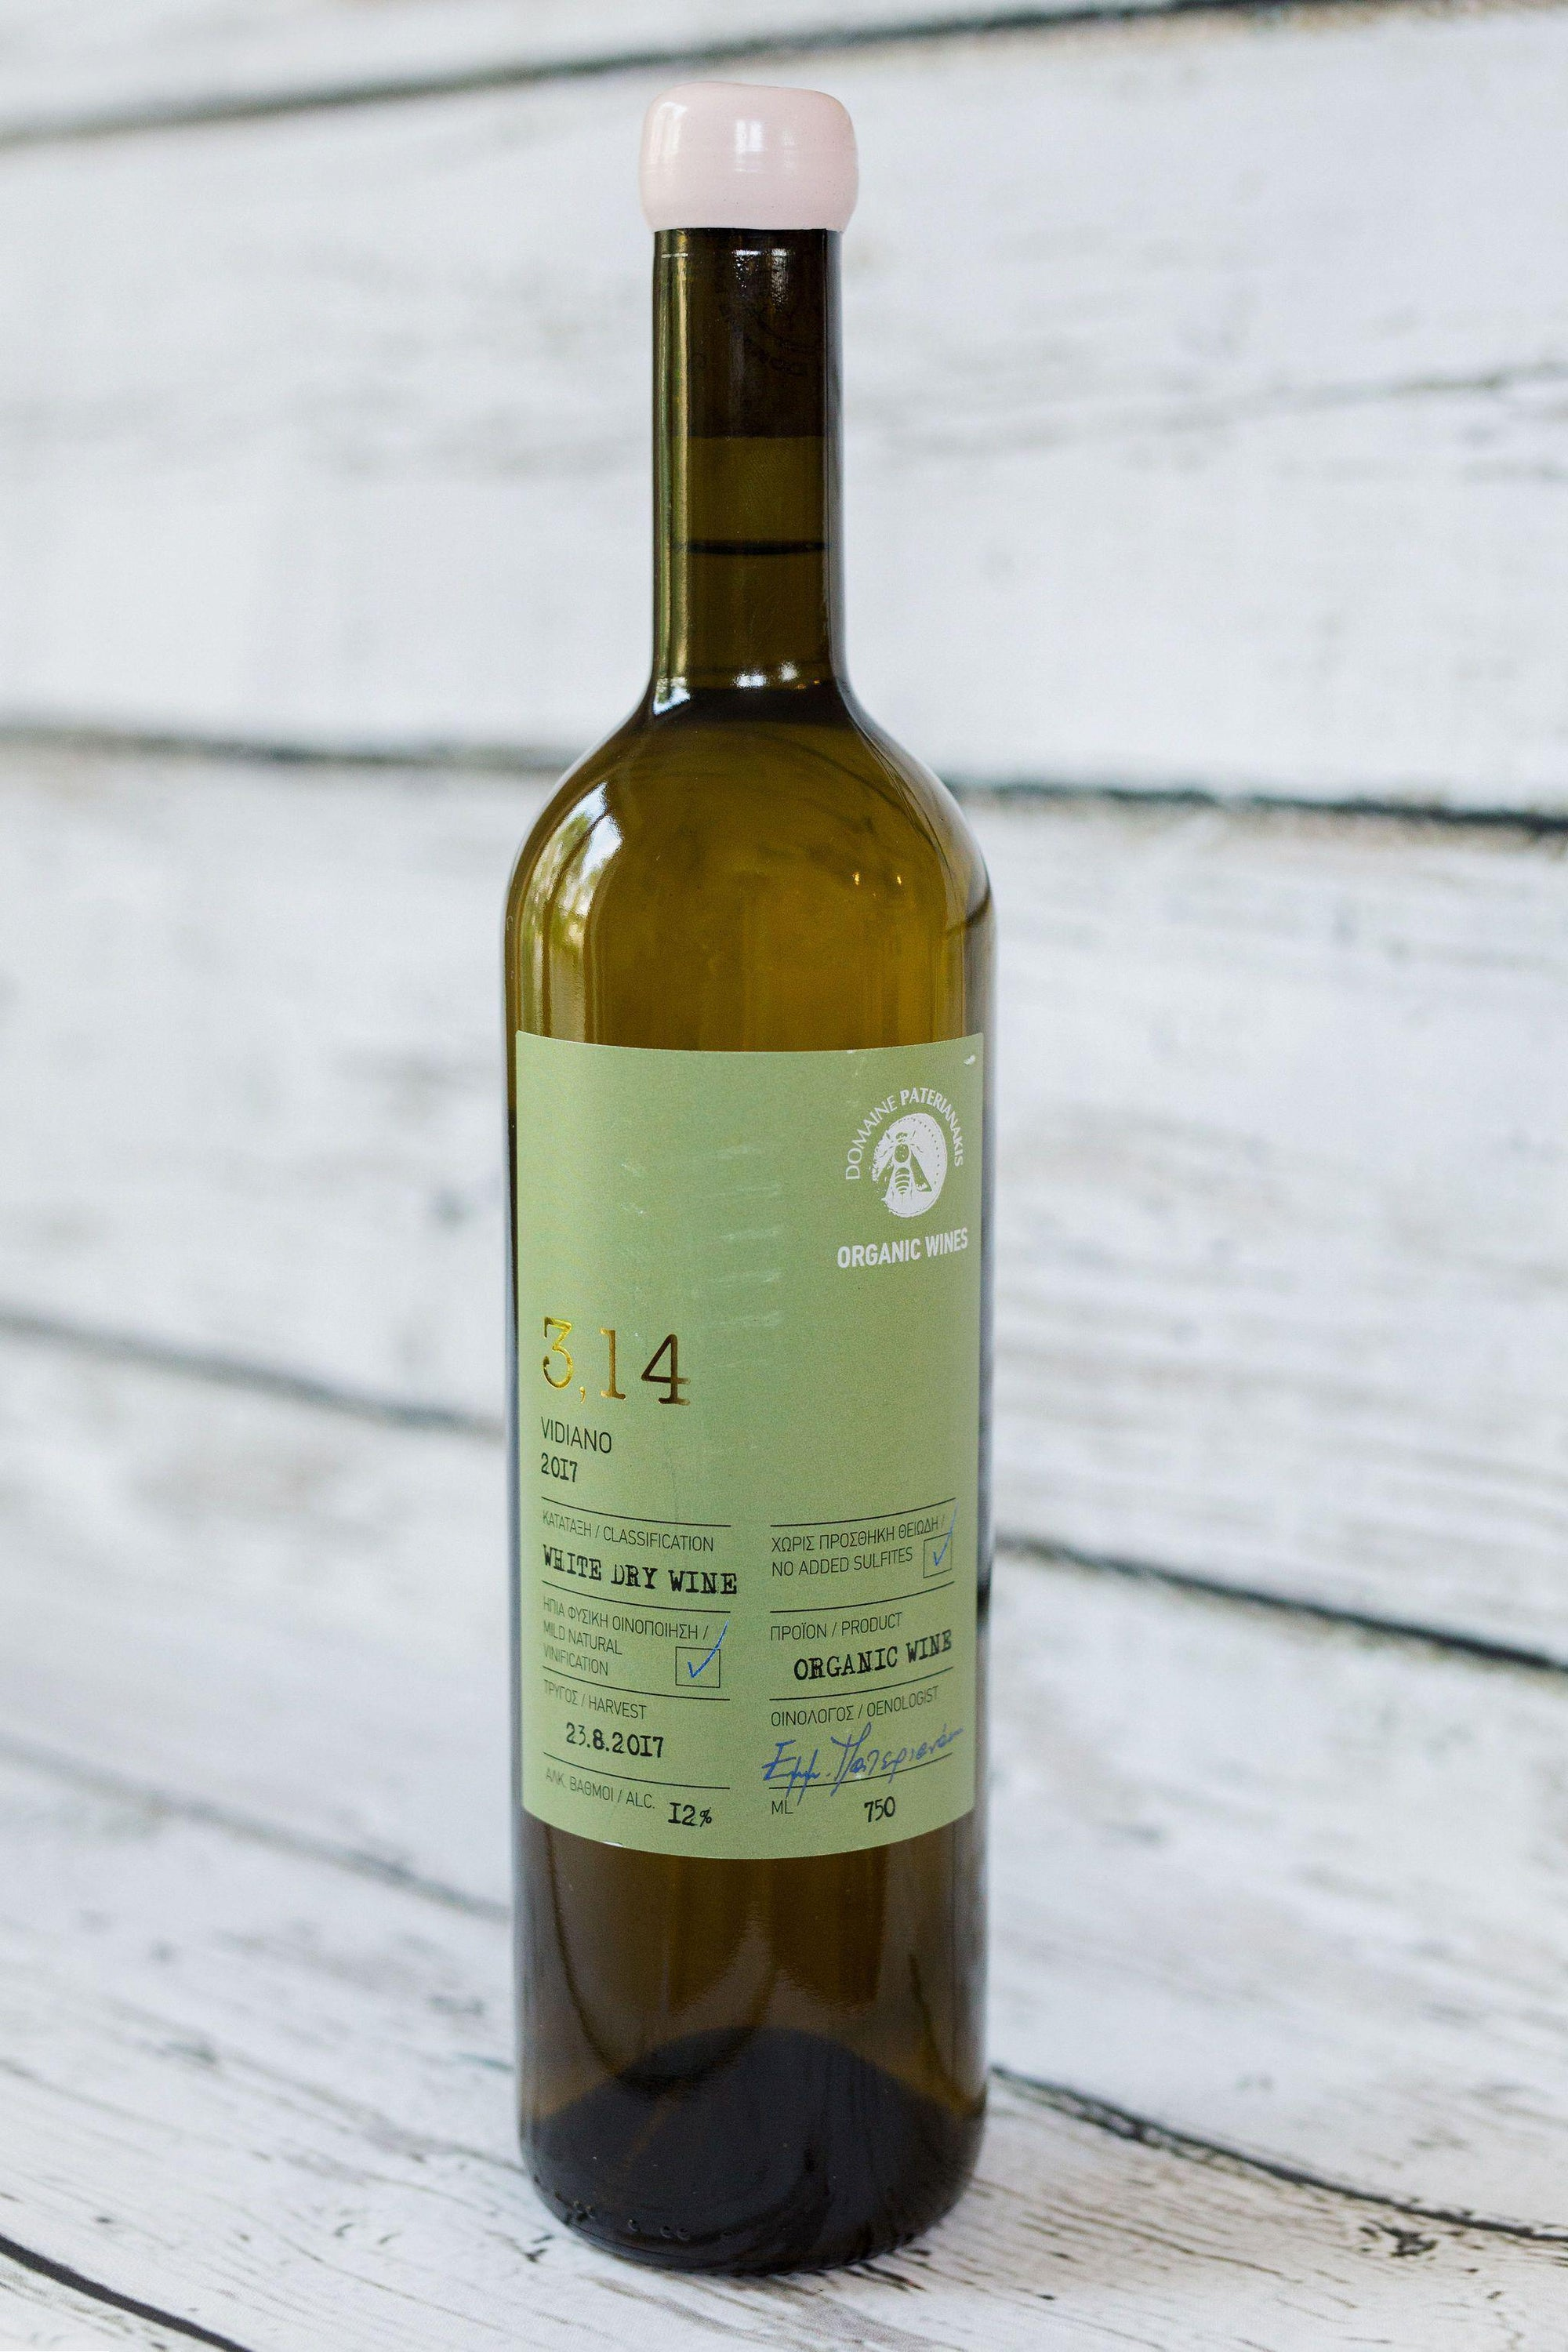 750ml green wine bottle of 3.14 Vidiano white wine from Domain Paterianakis with green label and cork with white wax seal